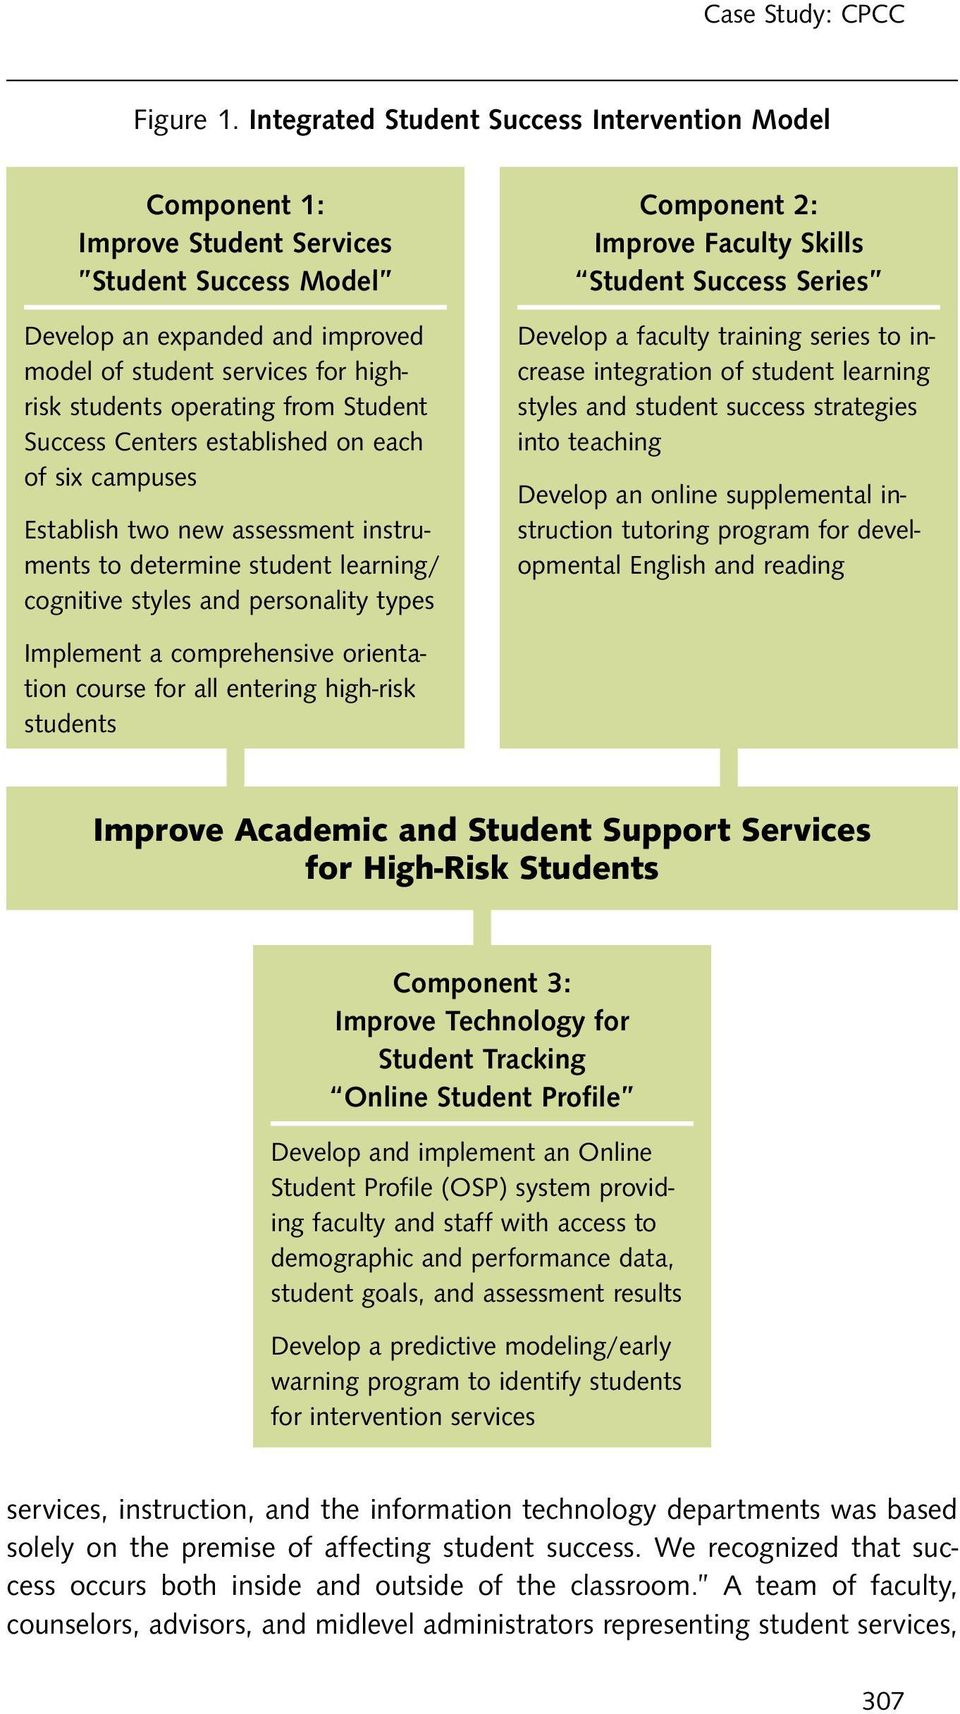 from Student Success Centers established on each of six campuses Establish two new assessment instruments to determine student learning/ cognitive styles and personality types Component 2: Improve